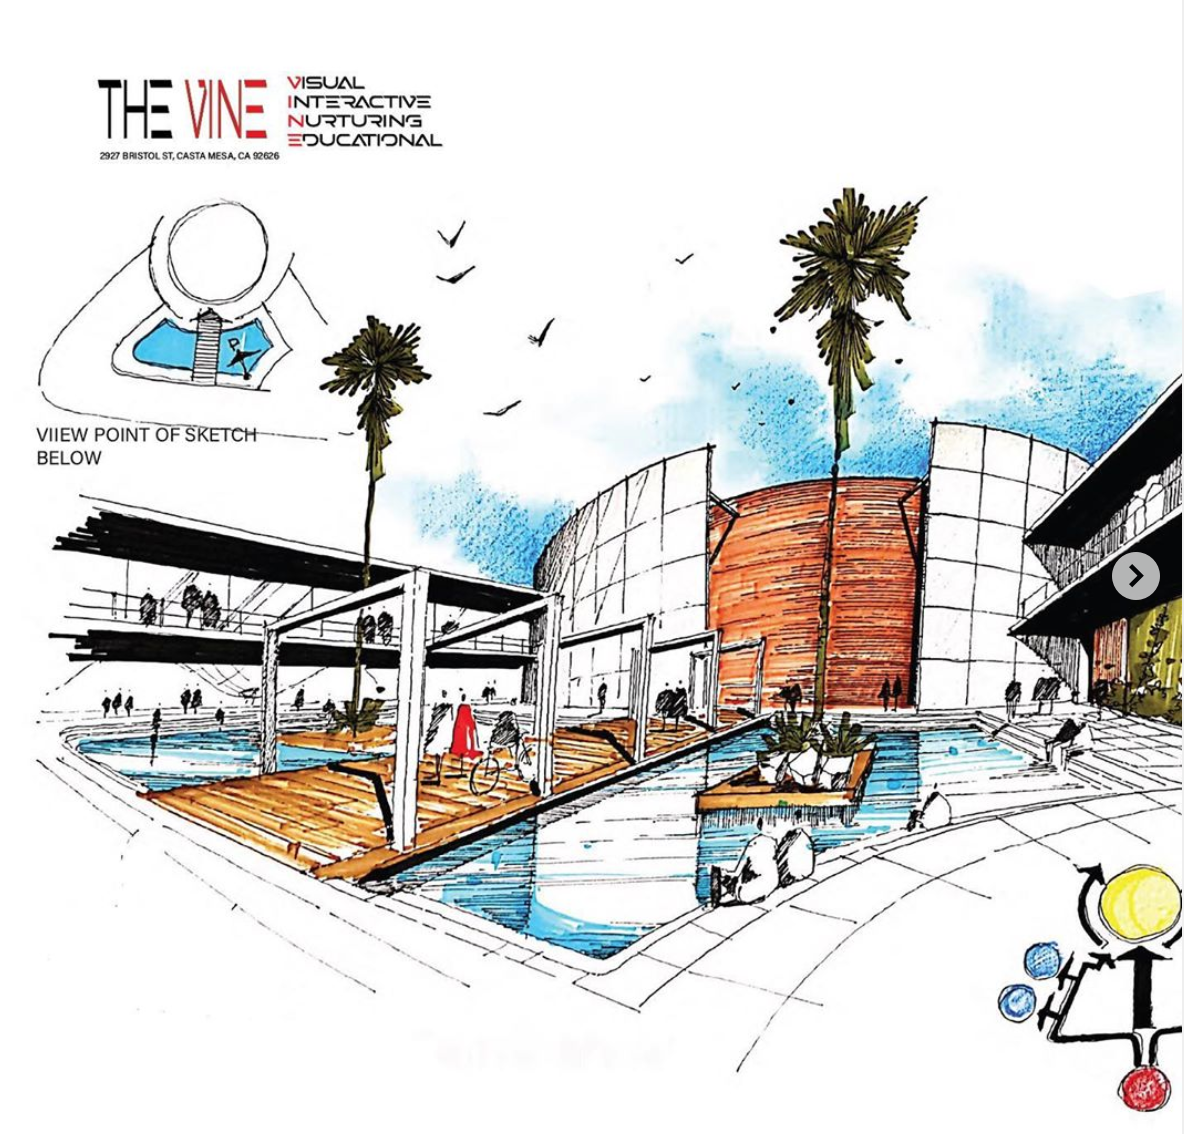 AIA - second place - The Vine - Bagherzadeh